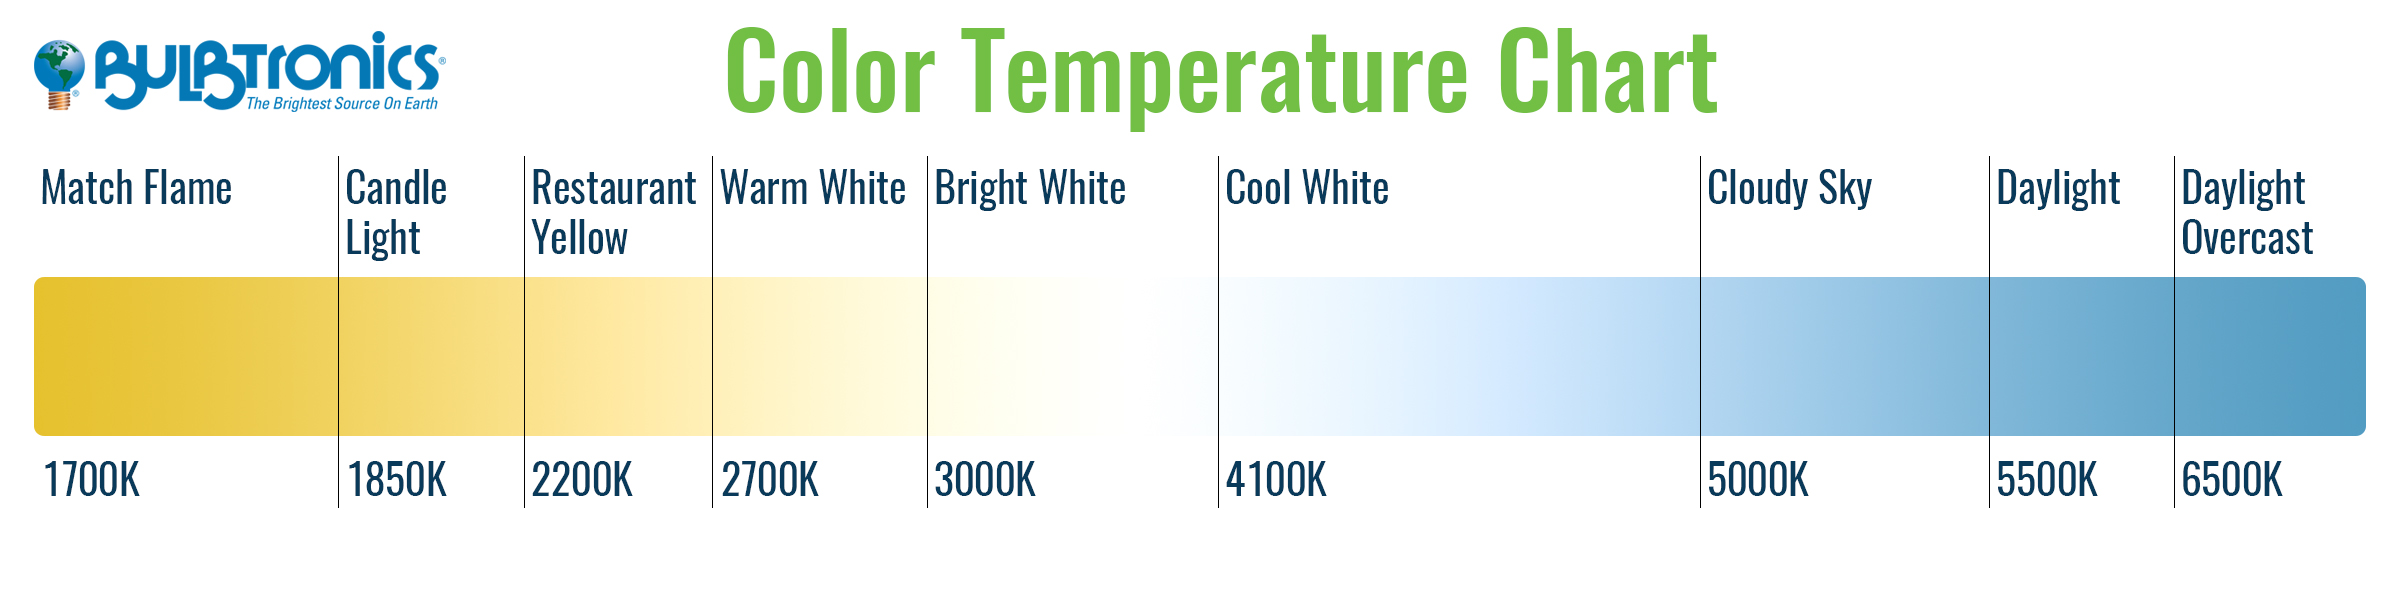 Bulbtronics understanding color temperature in lighting led temp chartg nvjuhfo Choice Image